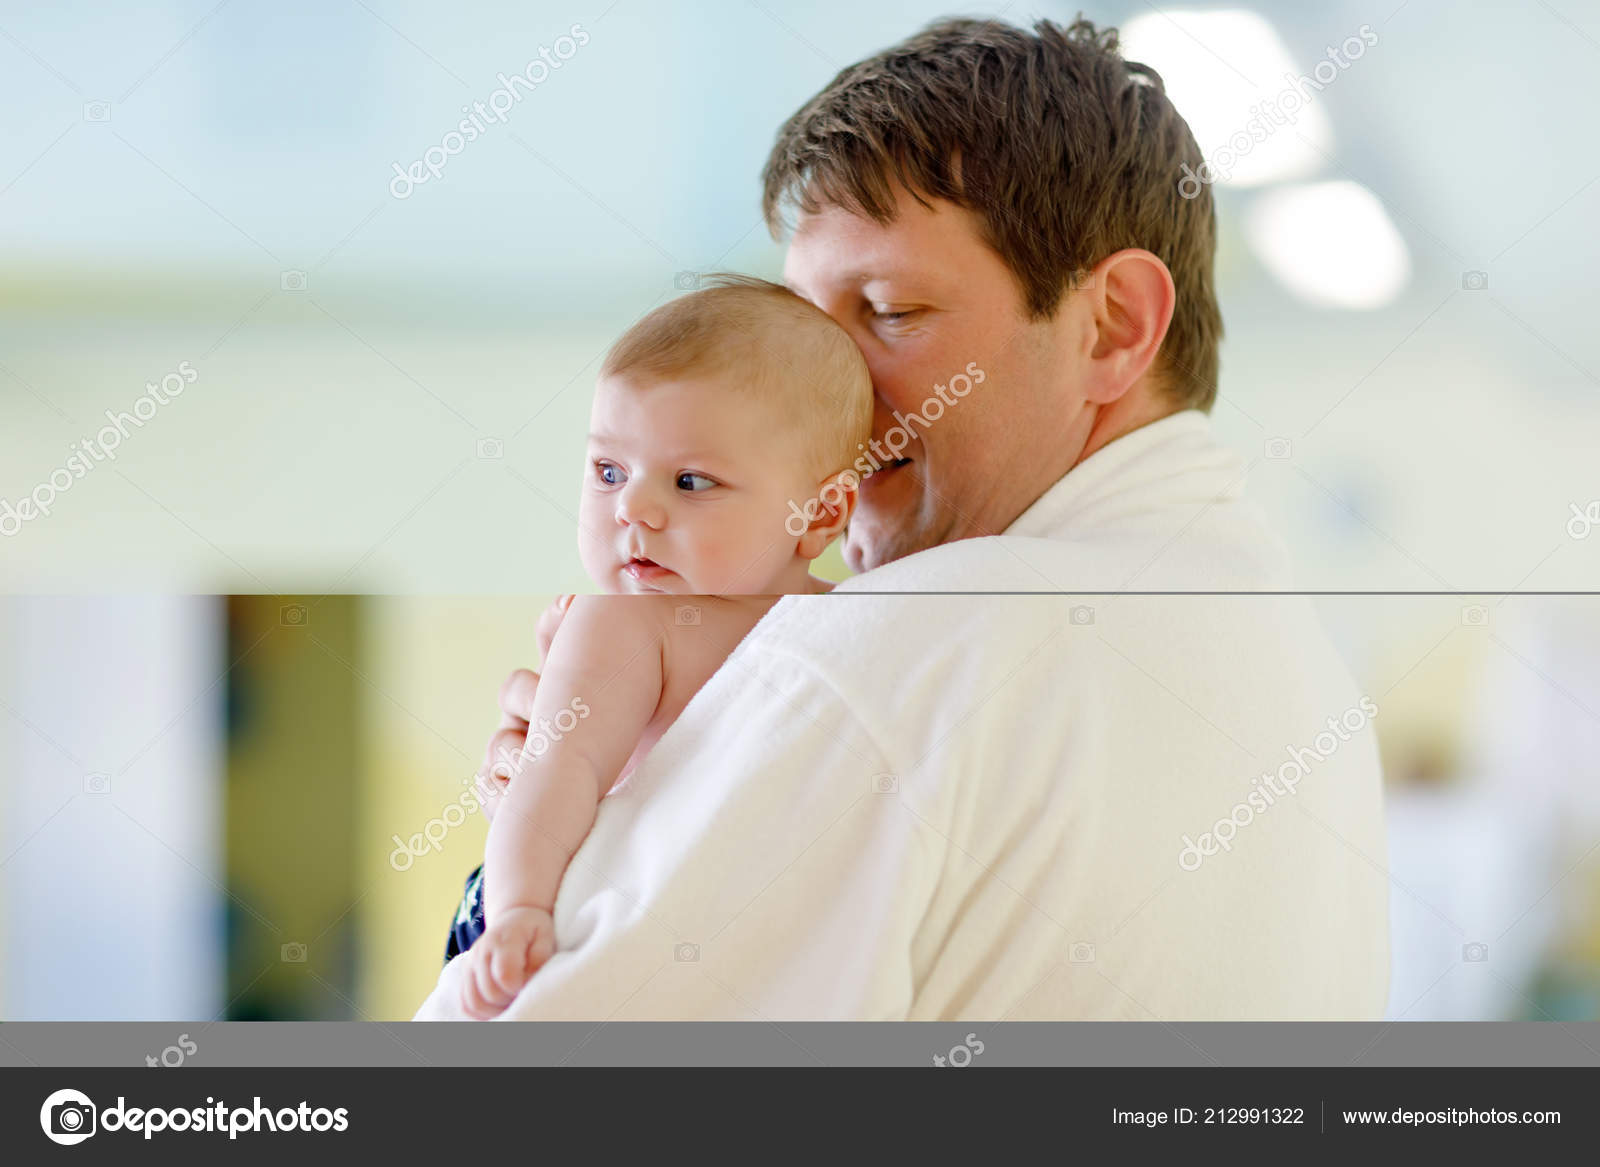 Young father and his little cute newborn baby daughter together in spa hotel dad in white bathrobe holding child adorable girl on arms family relaxing in